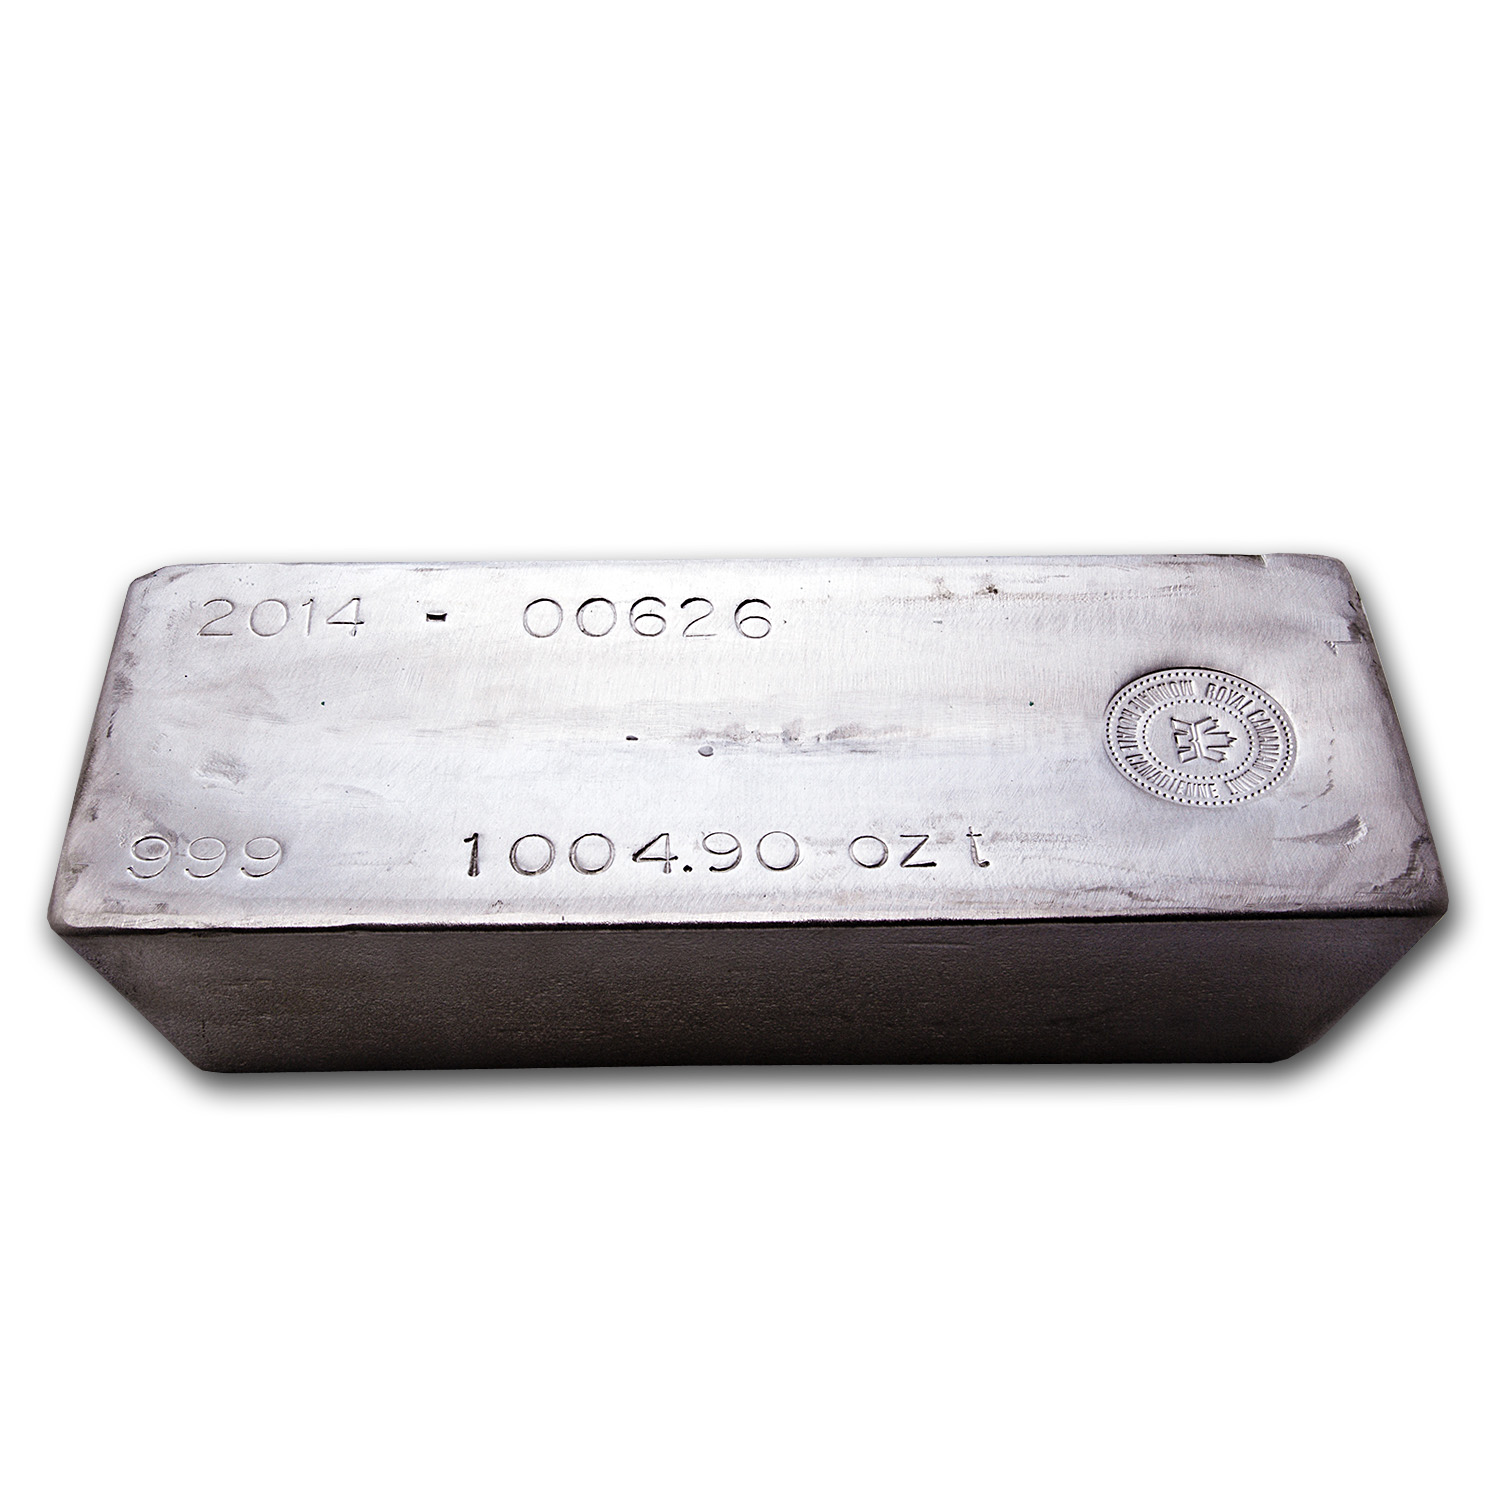 992.60 oz Silver Bars - Royal Canadian Mint (COMEX Deliverable)